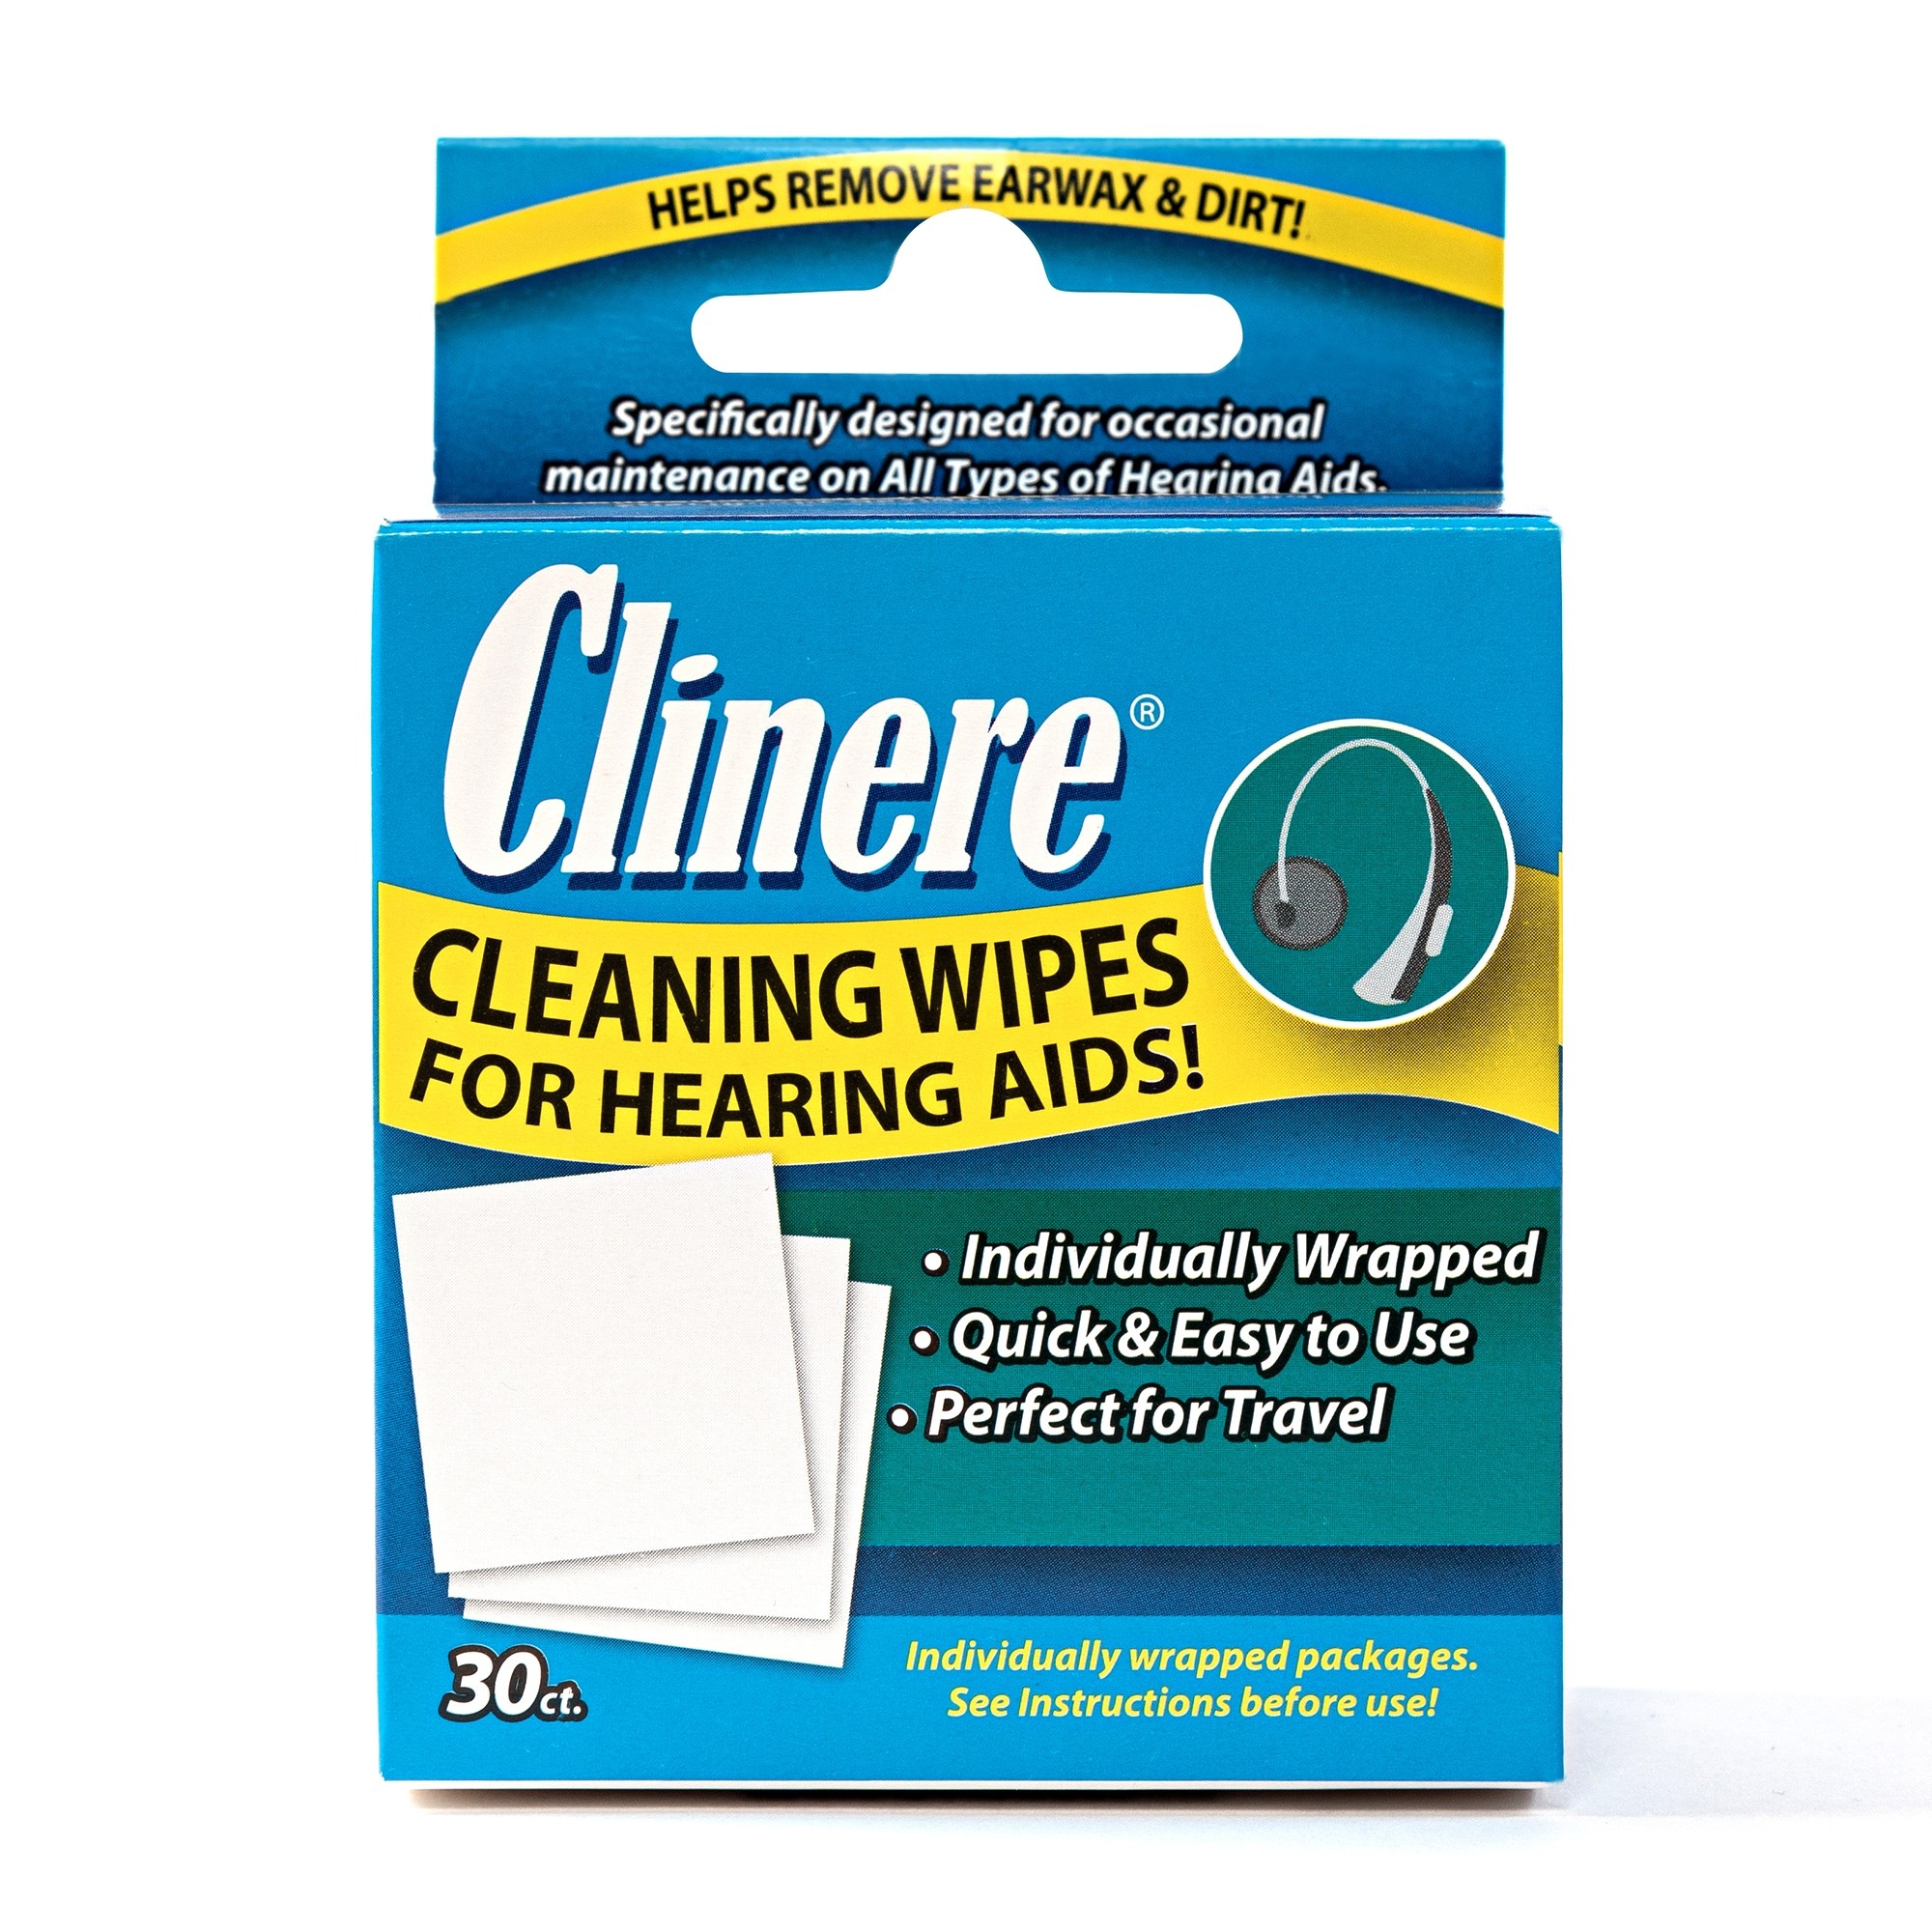 Clinere Hearing Aid Cleaning Wipes - 30 Count